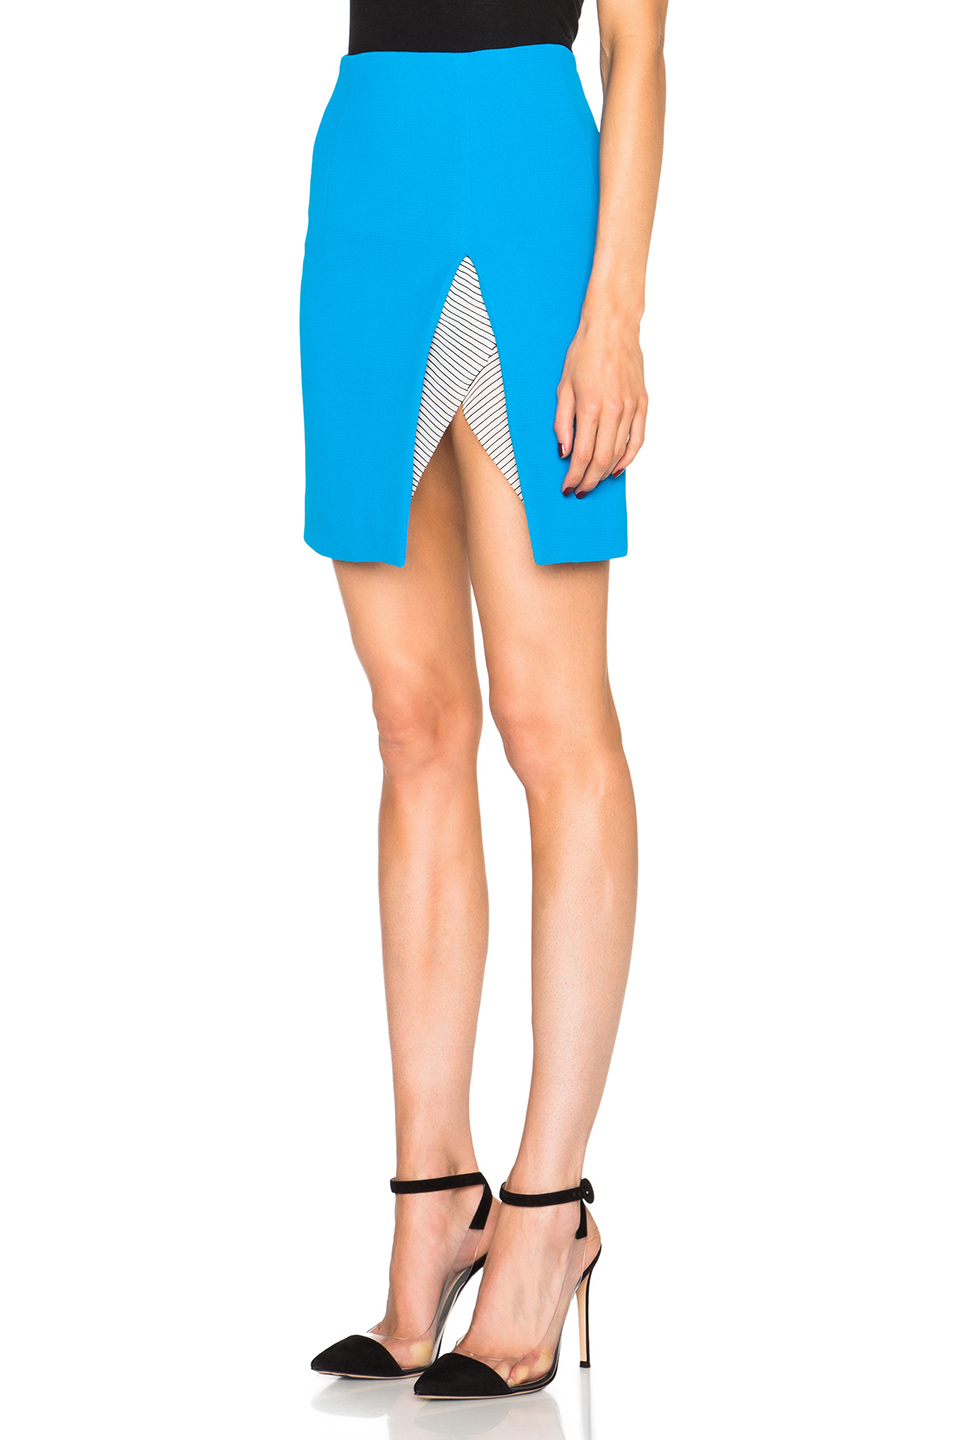 Christopher esber Contoured Slit Mini Skirt in Blue | Lyst